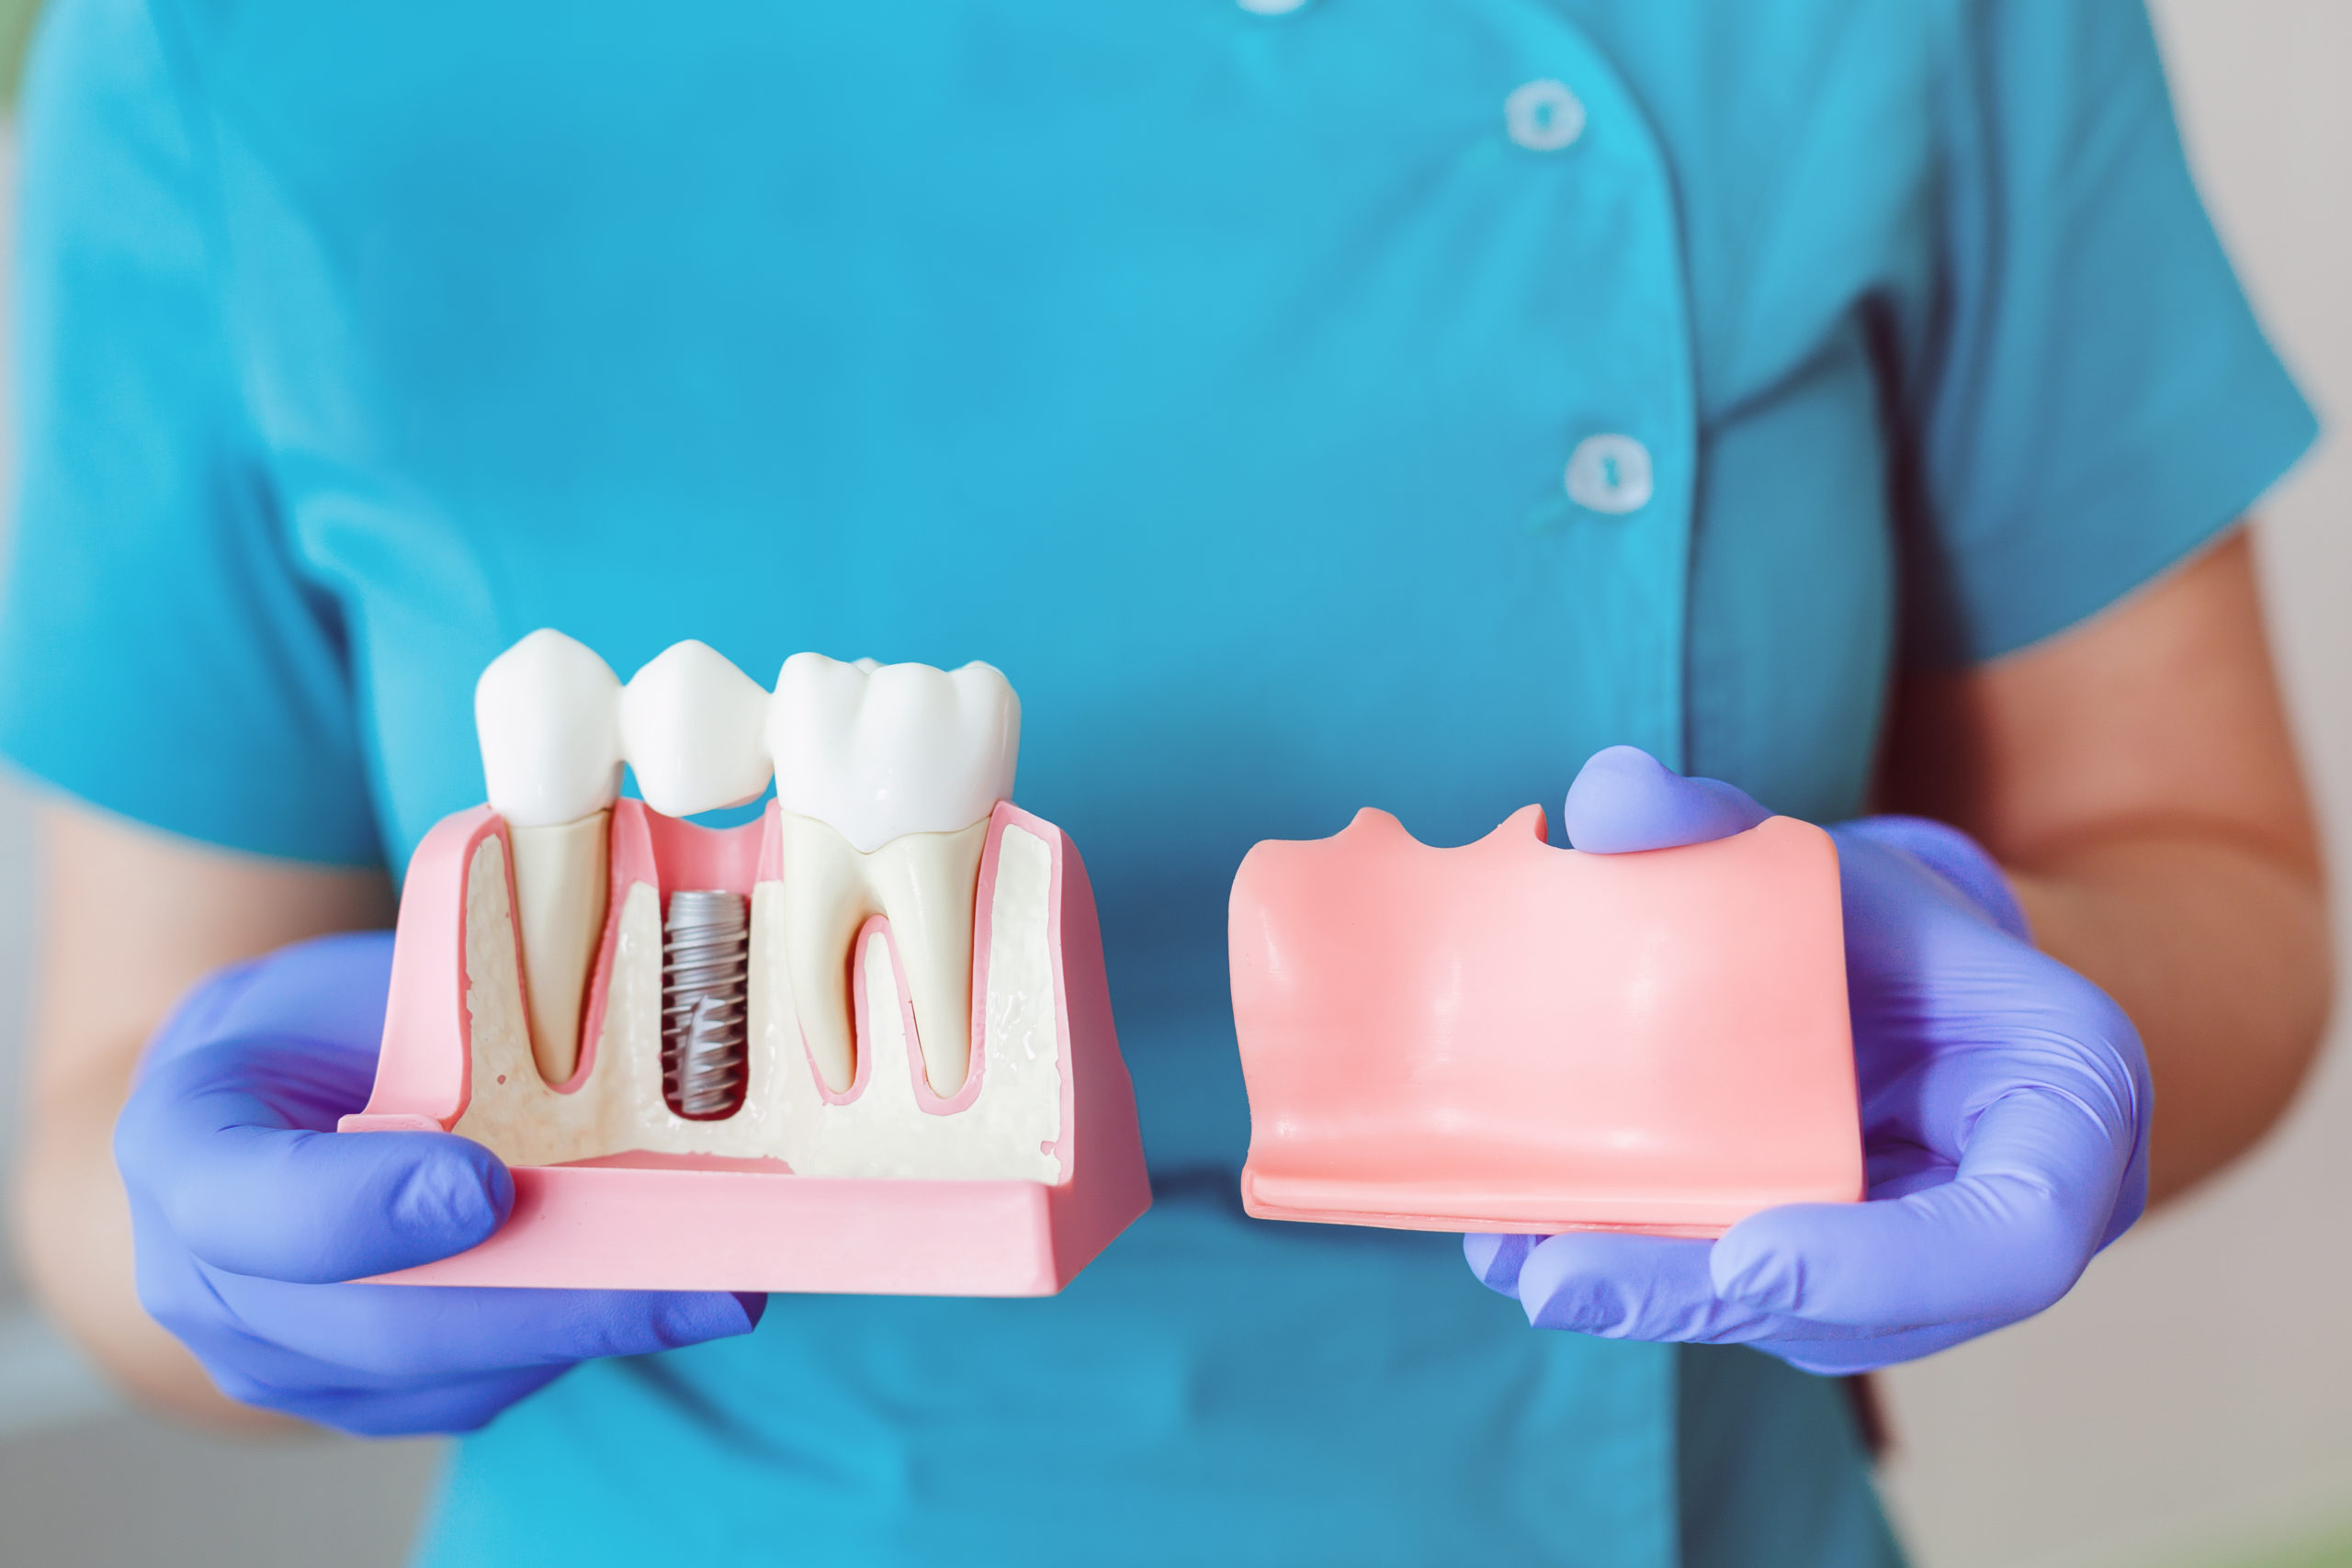 An Overview Of The Implant Process. kensington court clinic